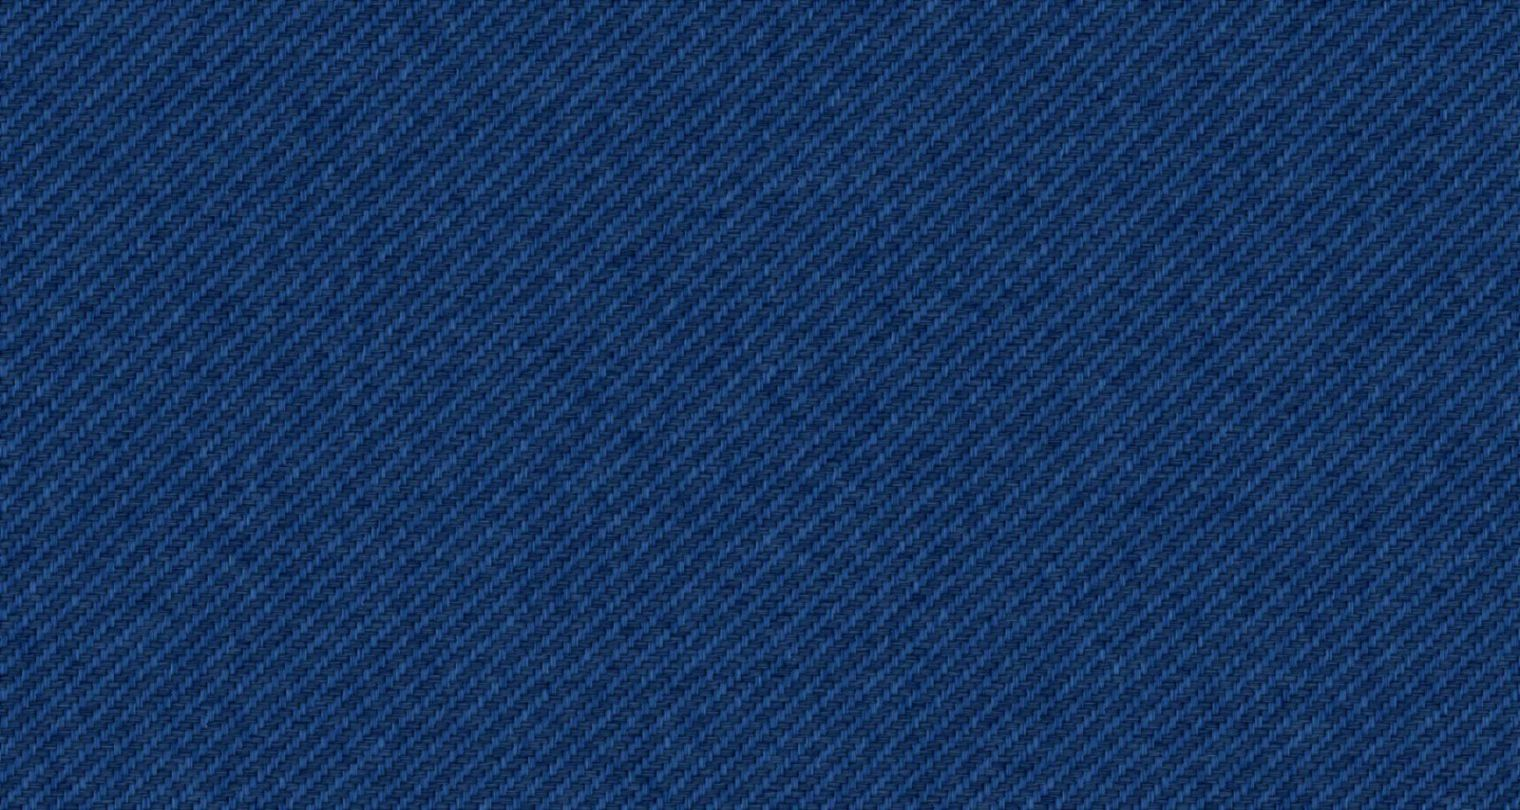 Dark Blue Plain Light Color Wallpaper The Champion Wallpapers